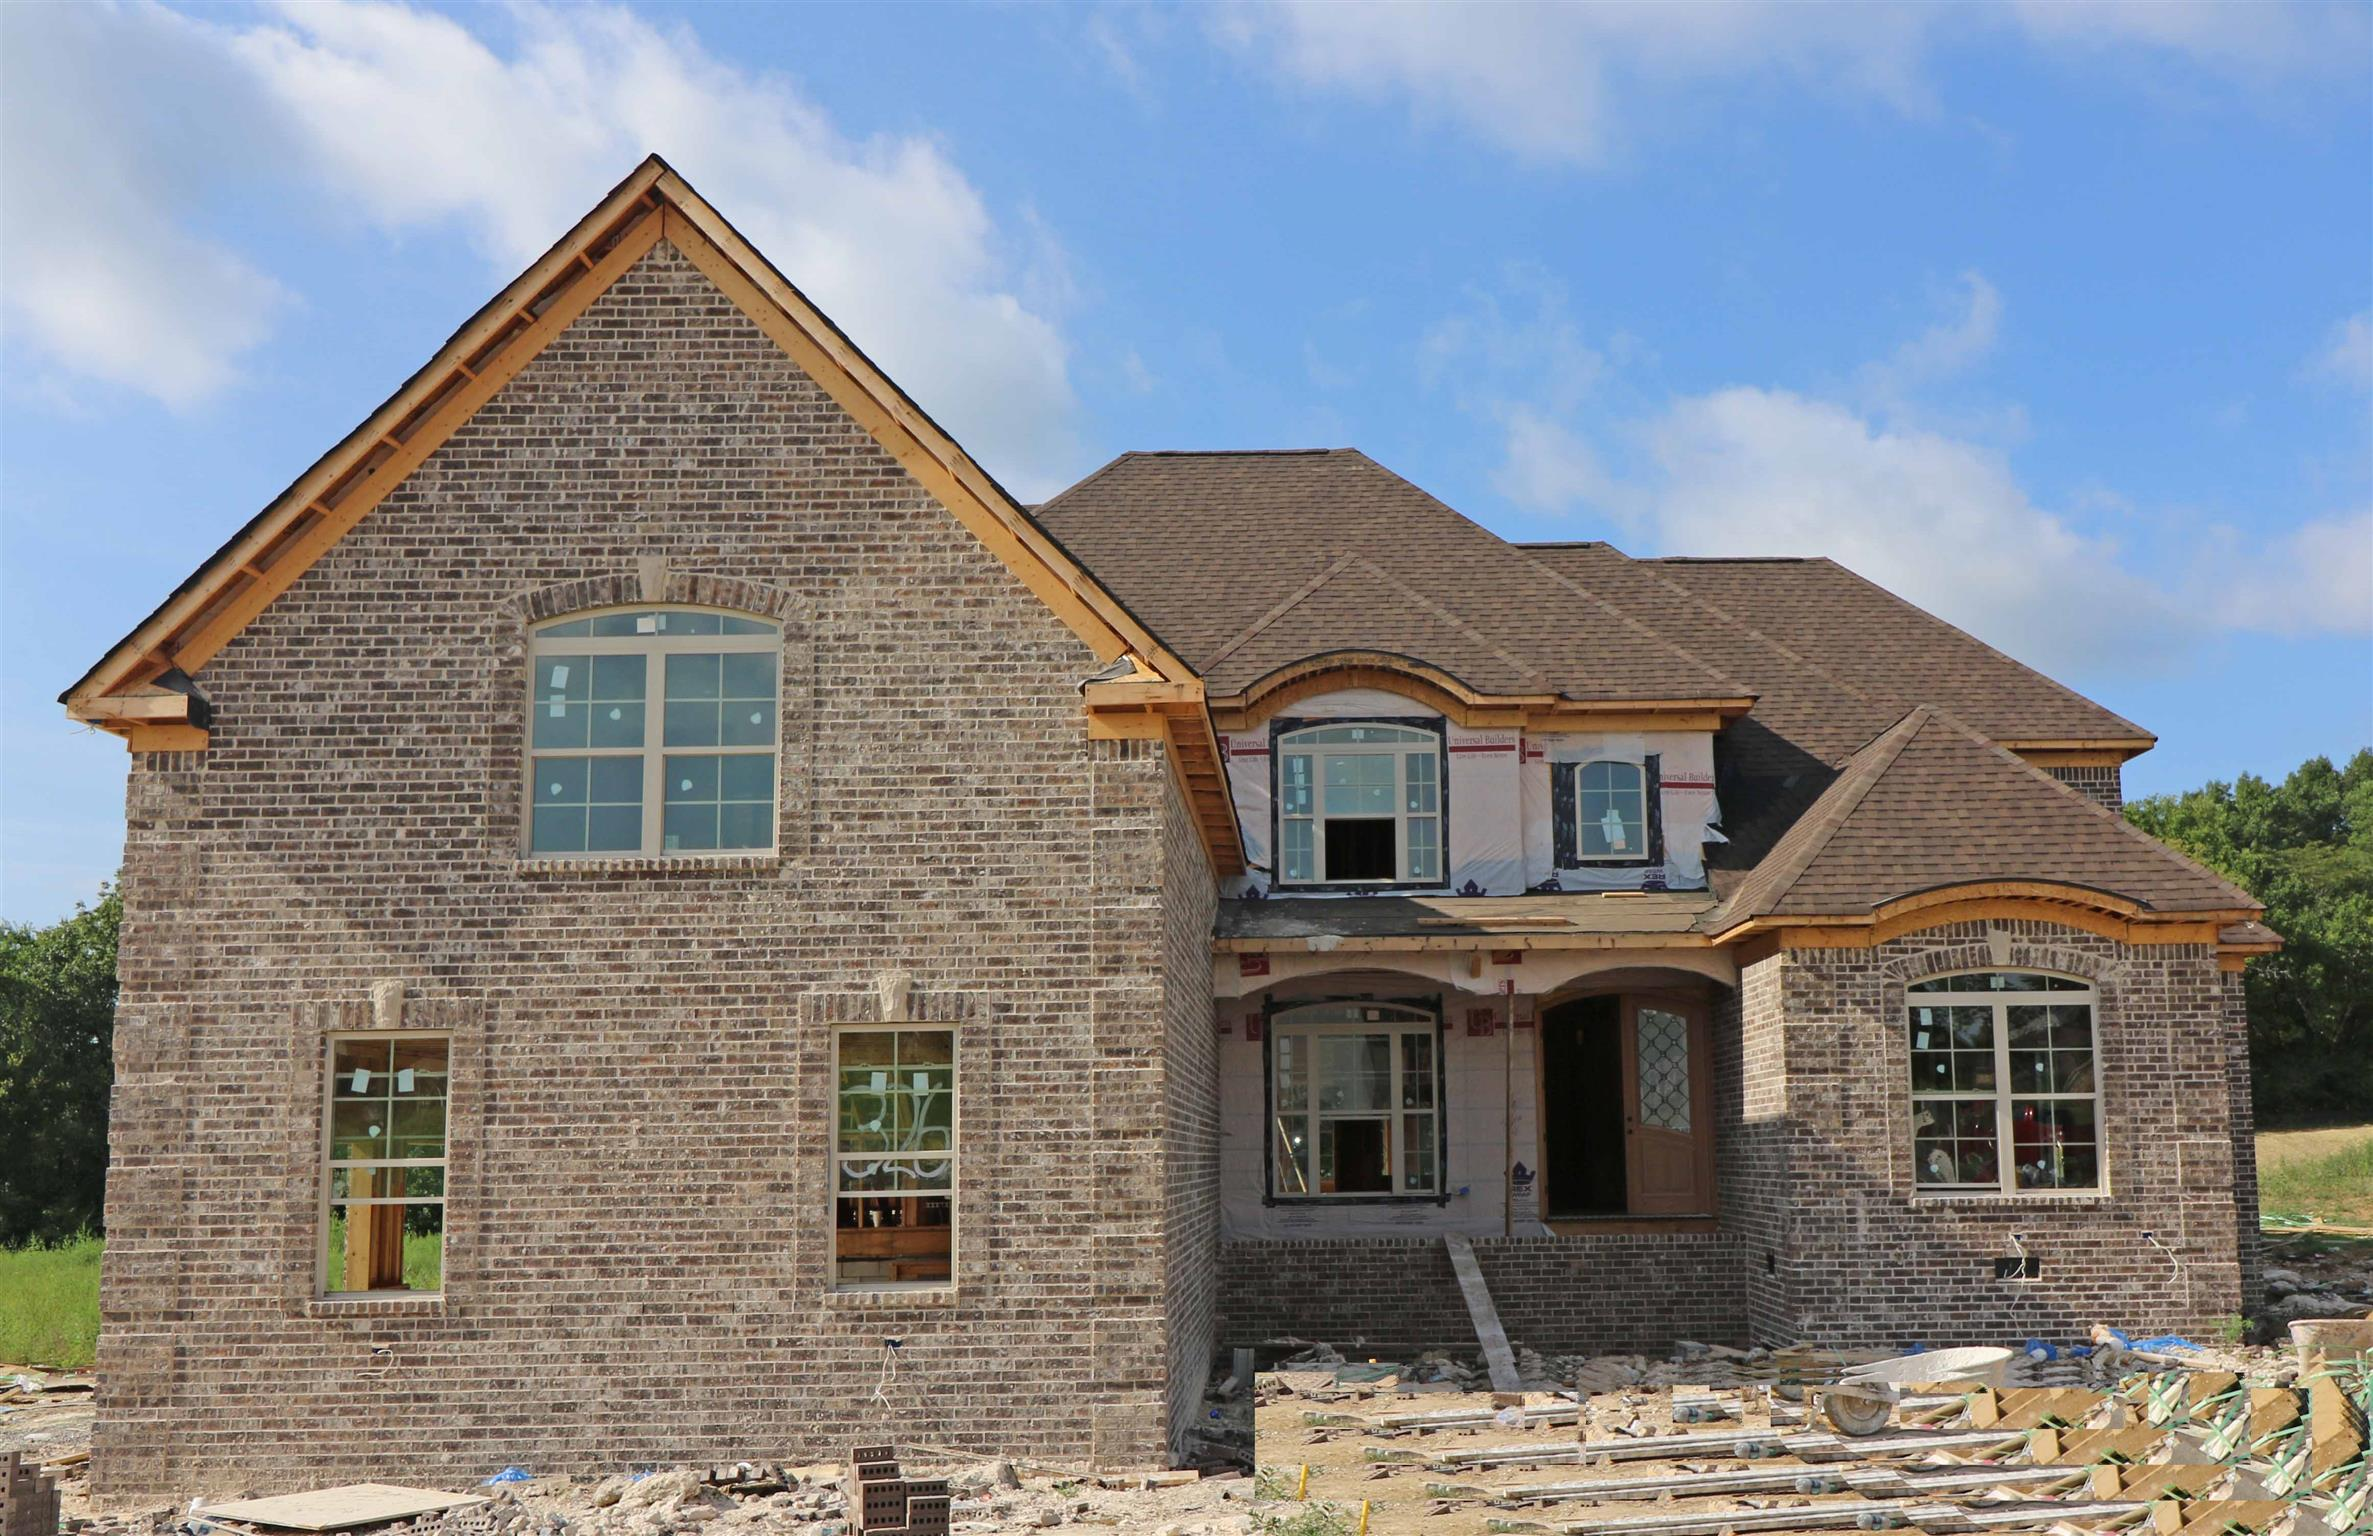 $769,900 - 4Br/4Ba -  for Sale in Wright Farms Sec. 5a, Mount Juliet